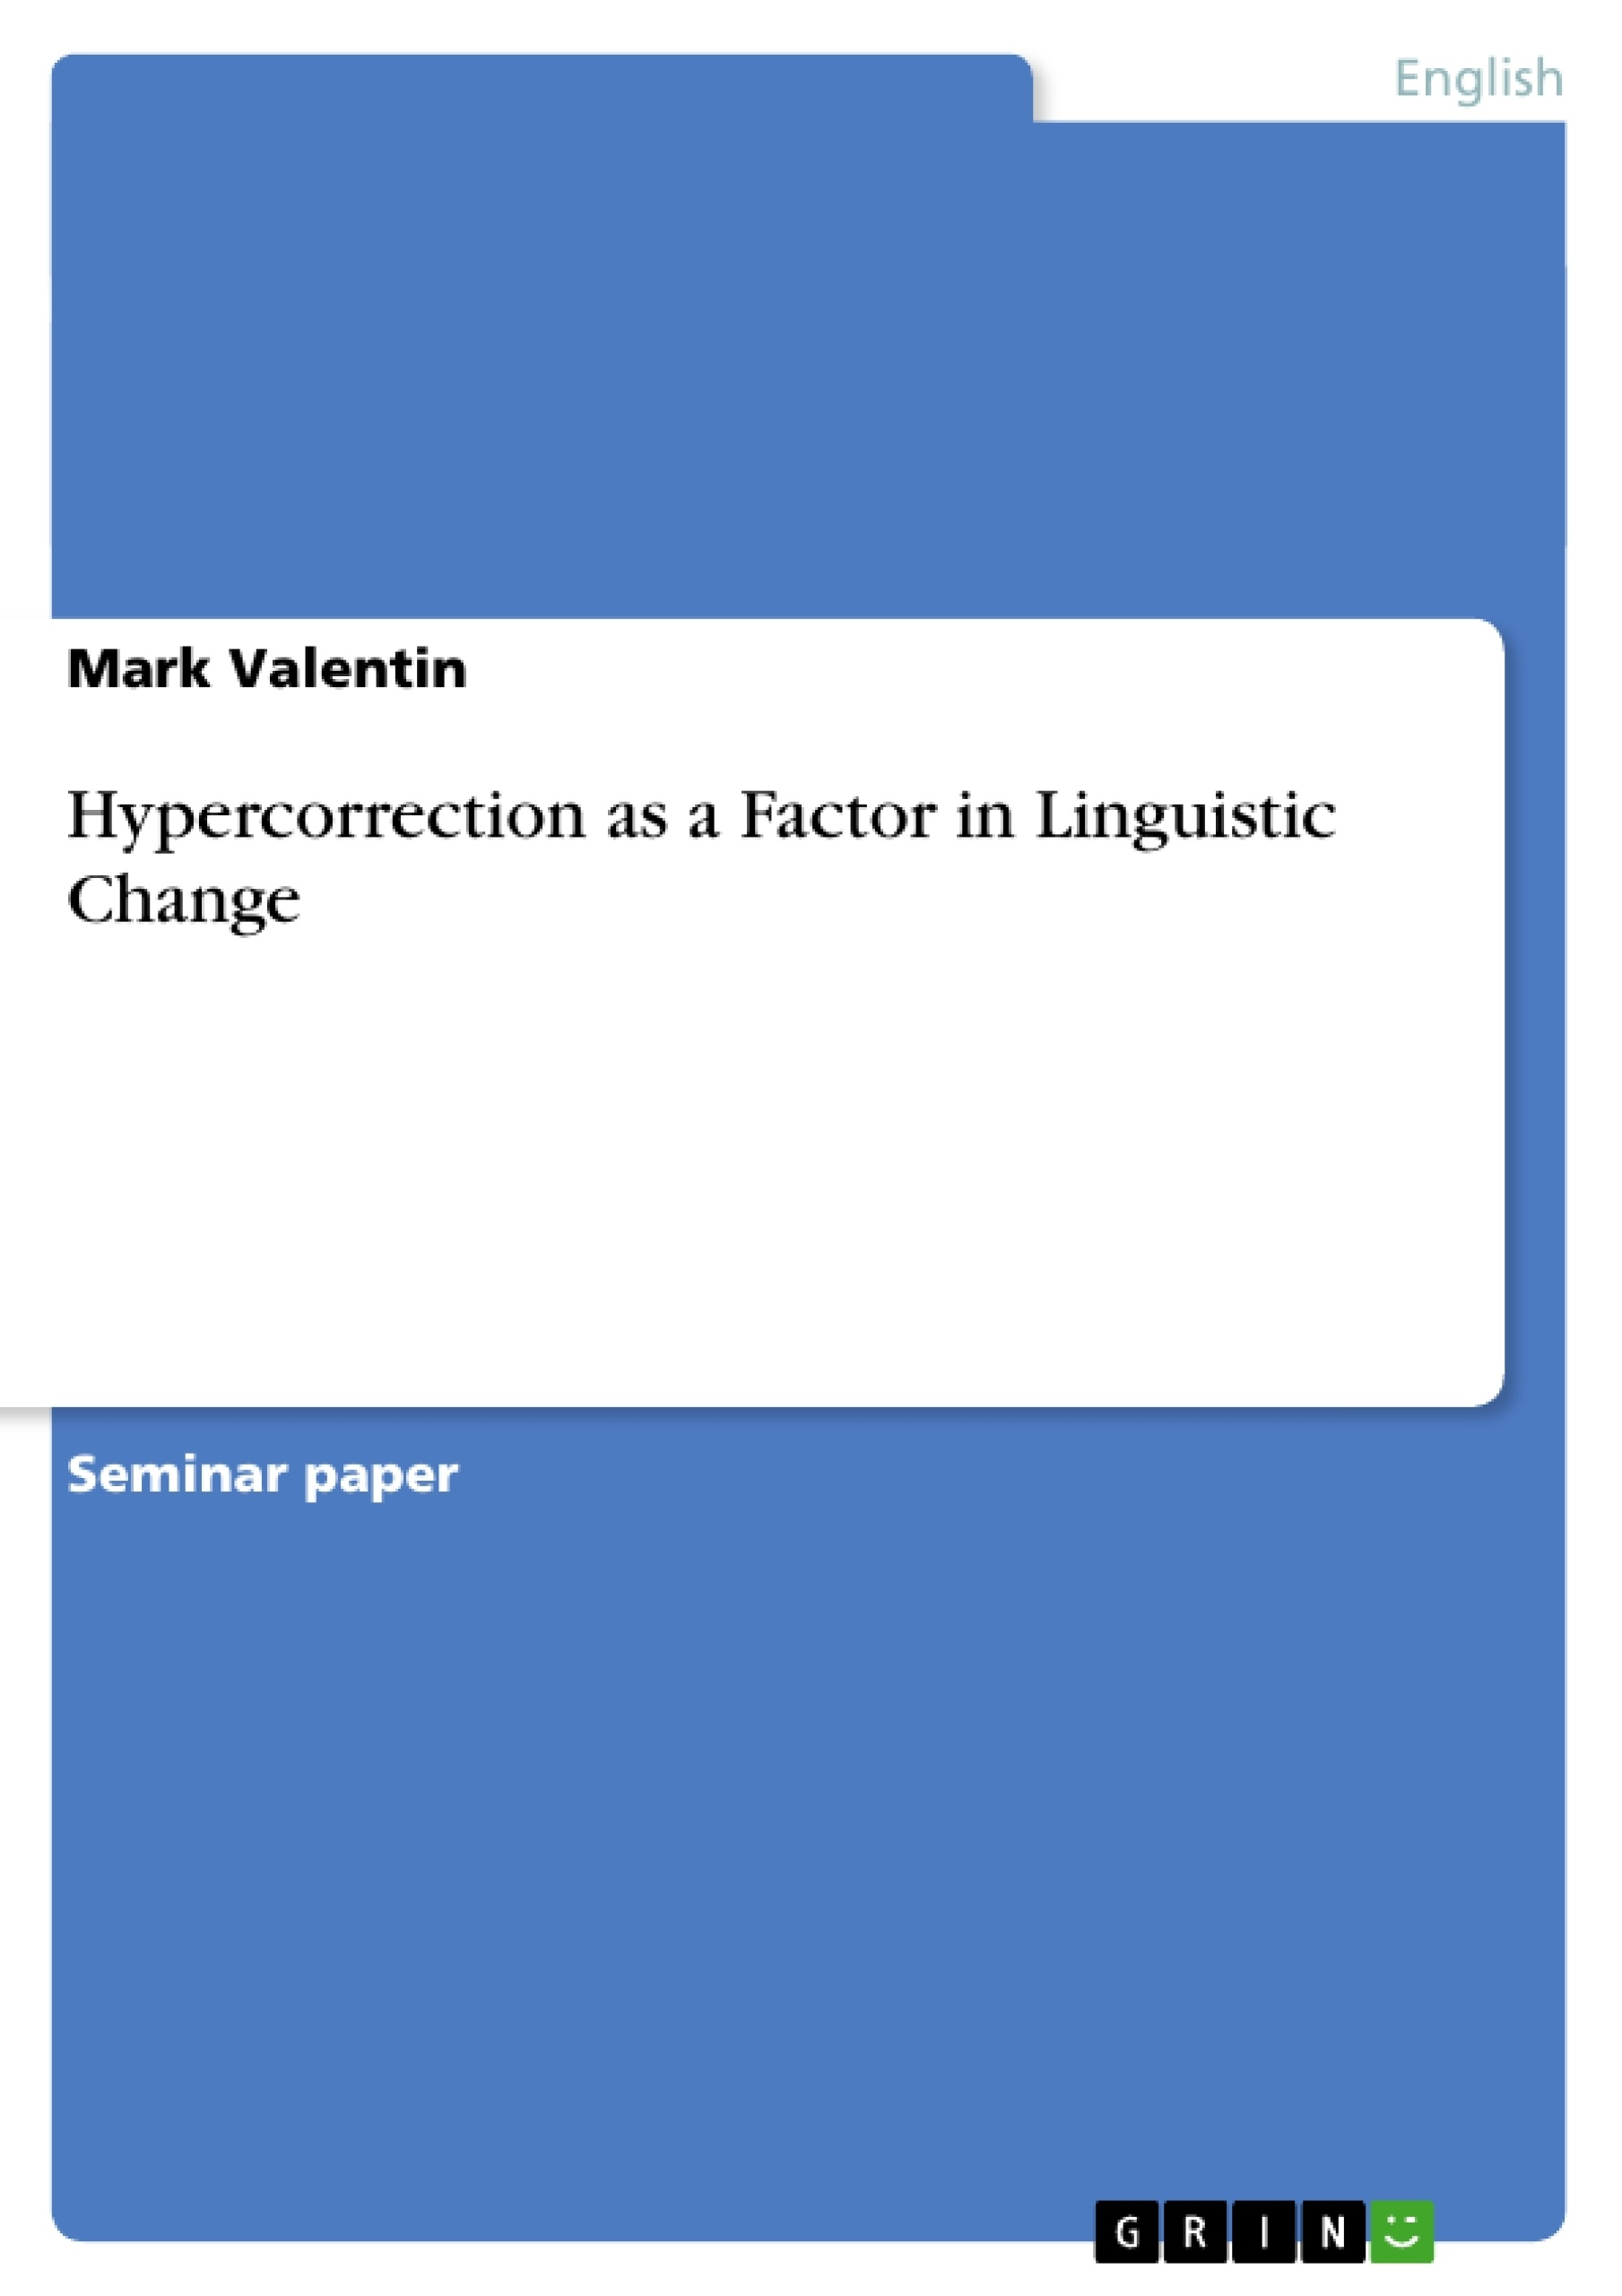 Title: Hypercorrection as a Factor in Linguistic Change